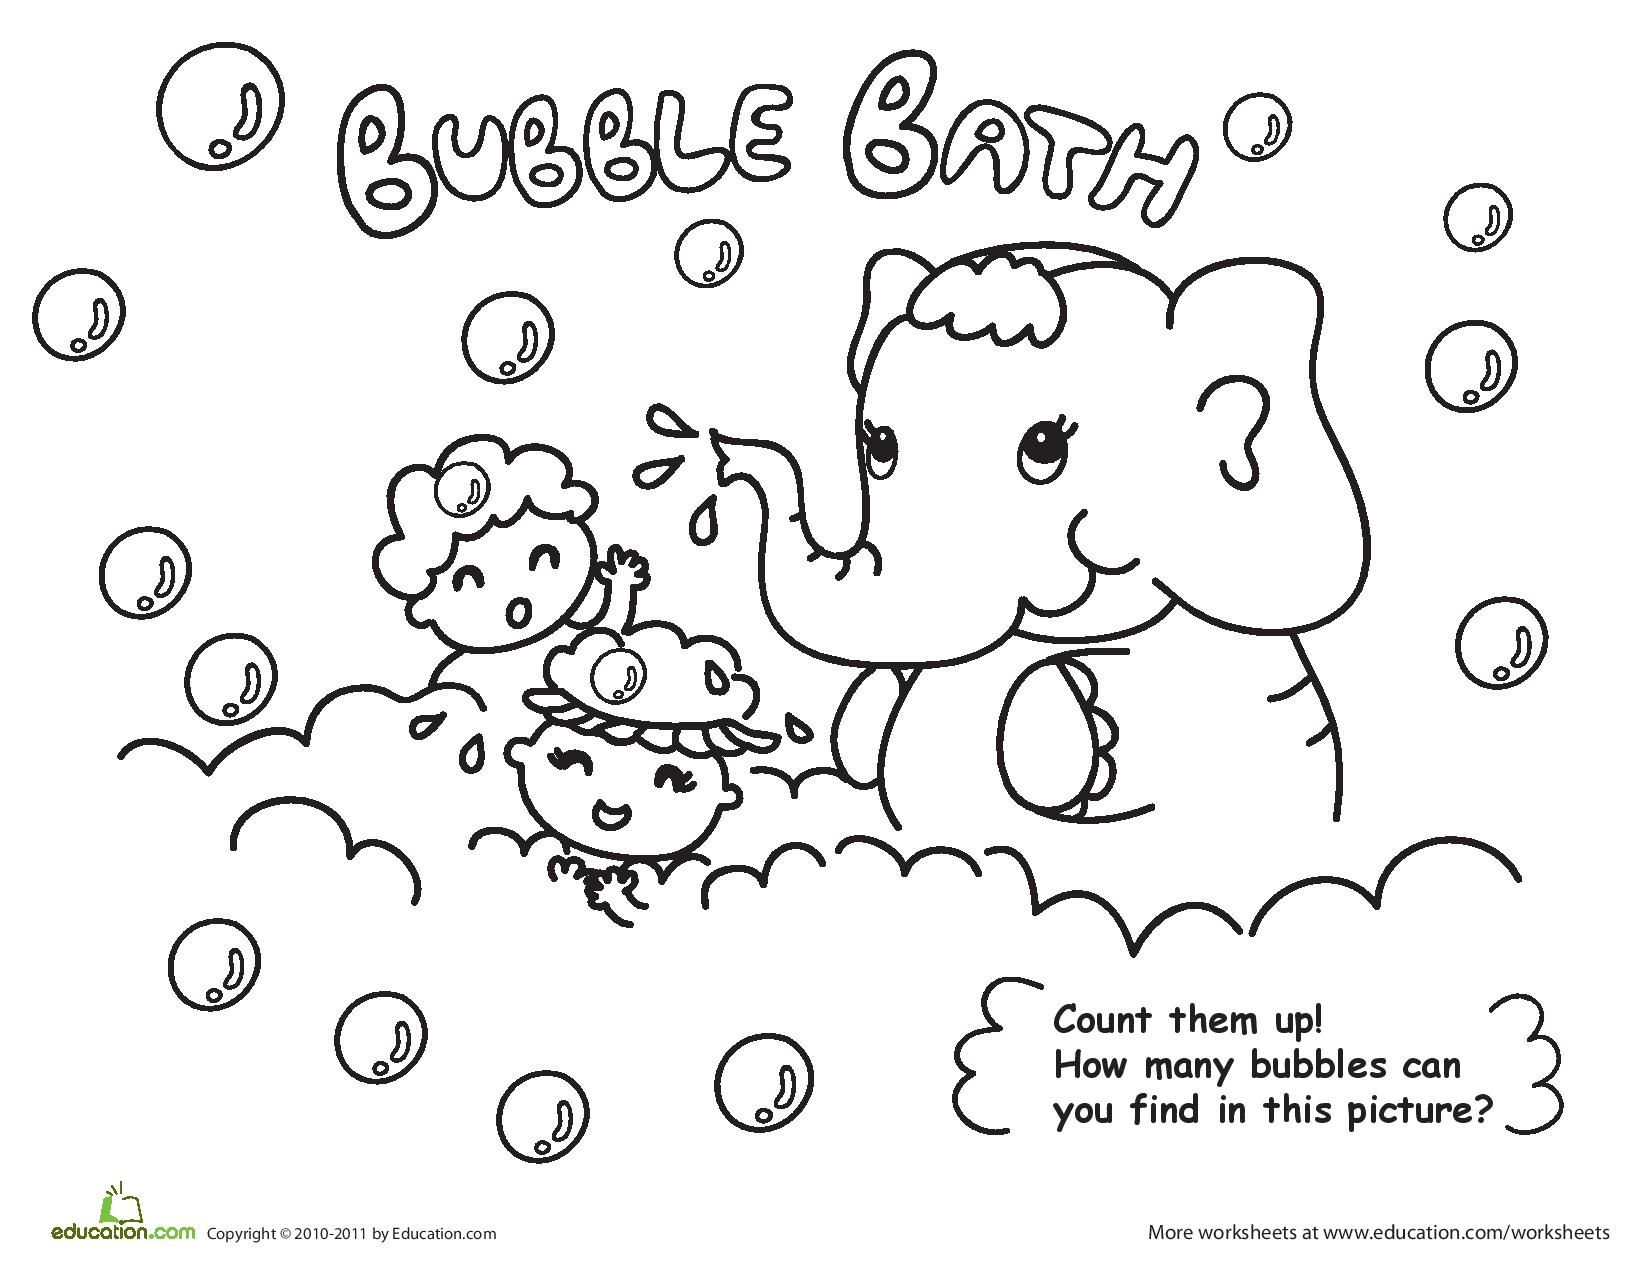 Bubble bath coloring page - Count them up! How many bubbles can you ...